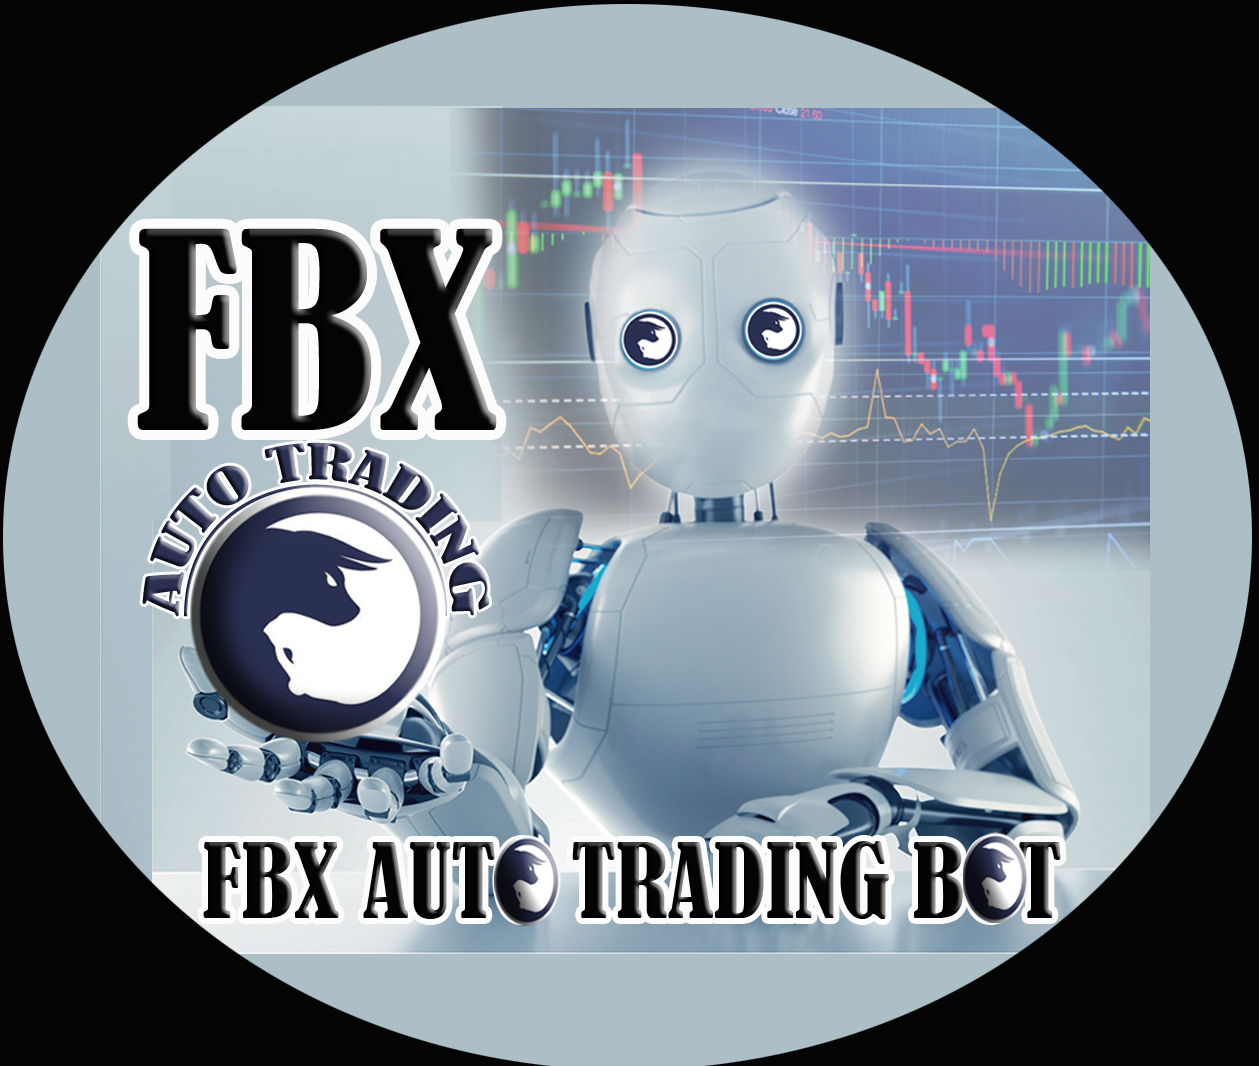 FBX AUTO TRADING BOT - Profitably, safely and easily